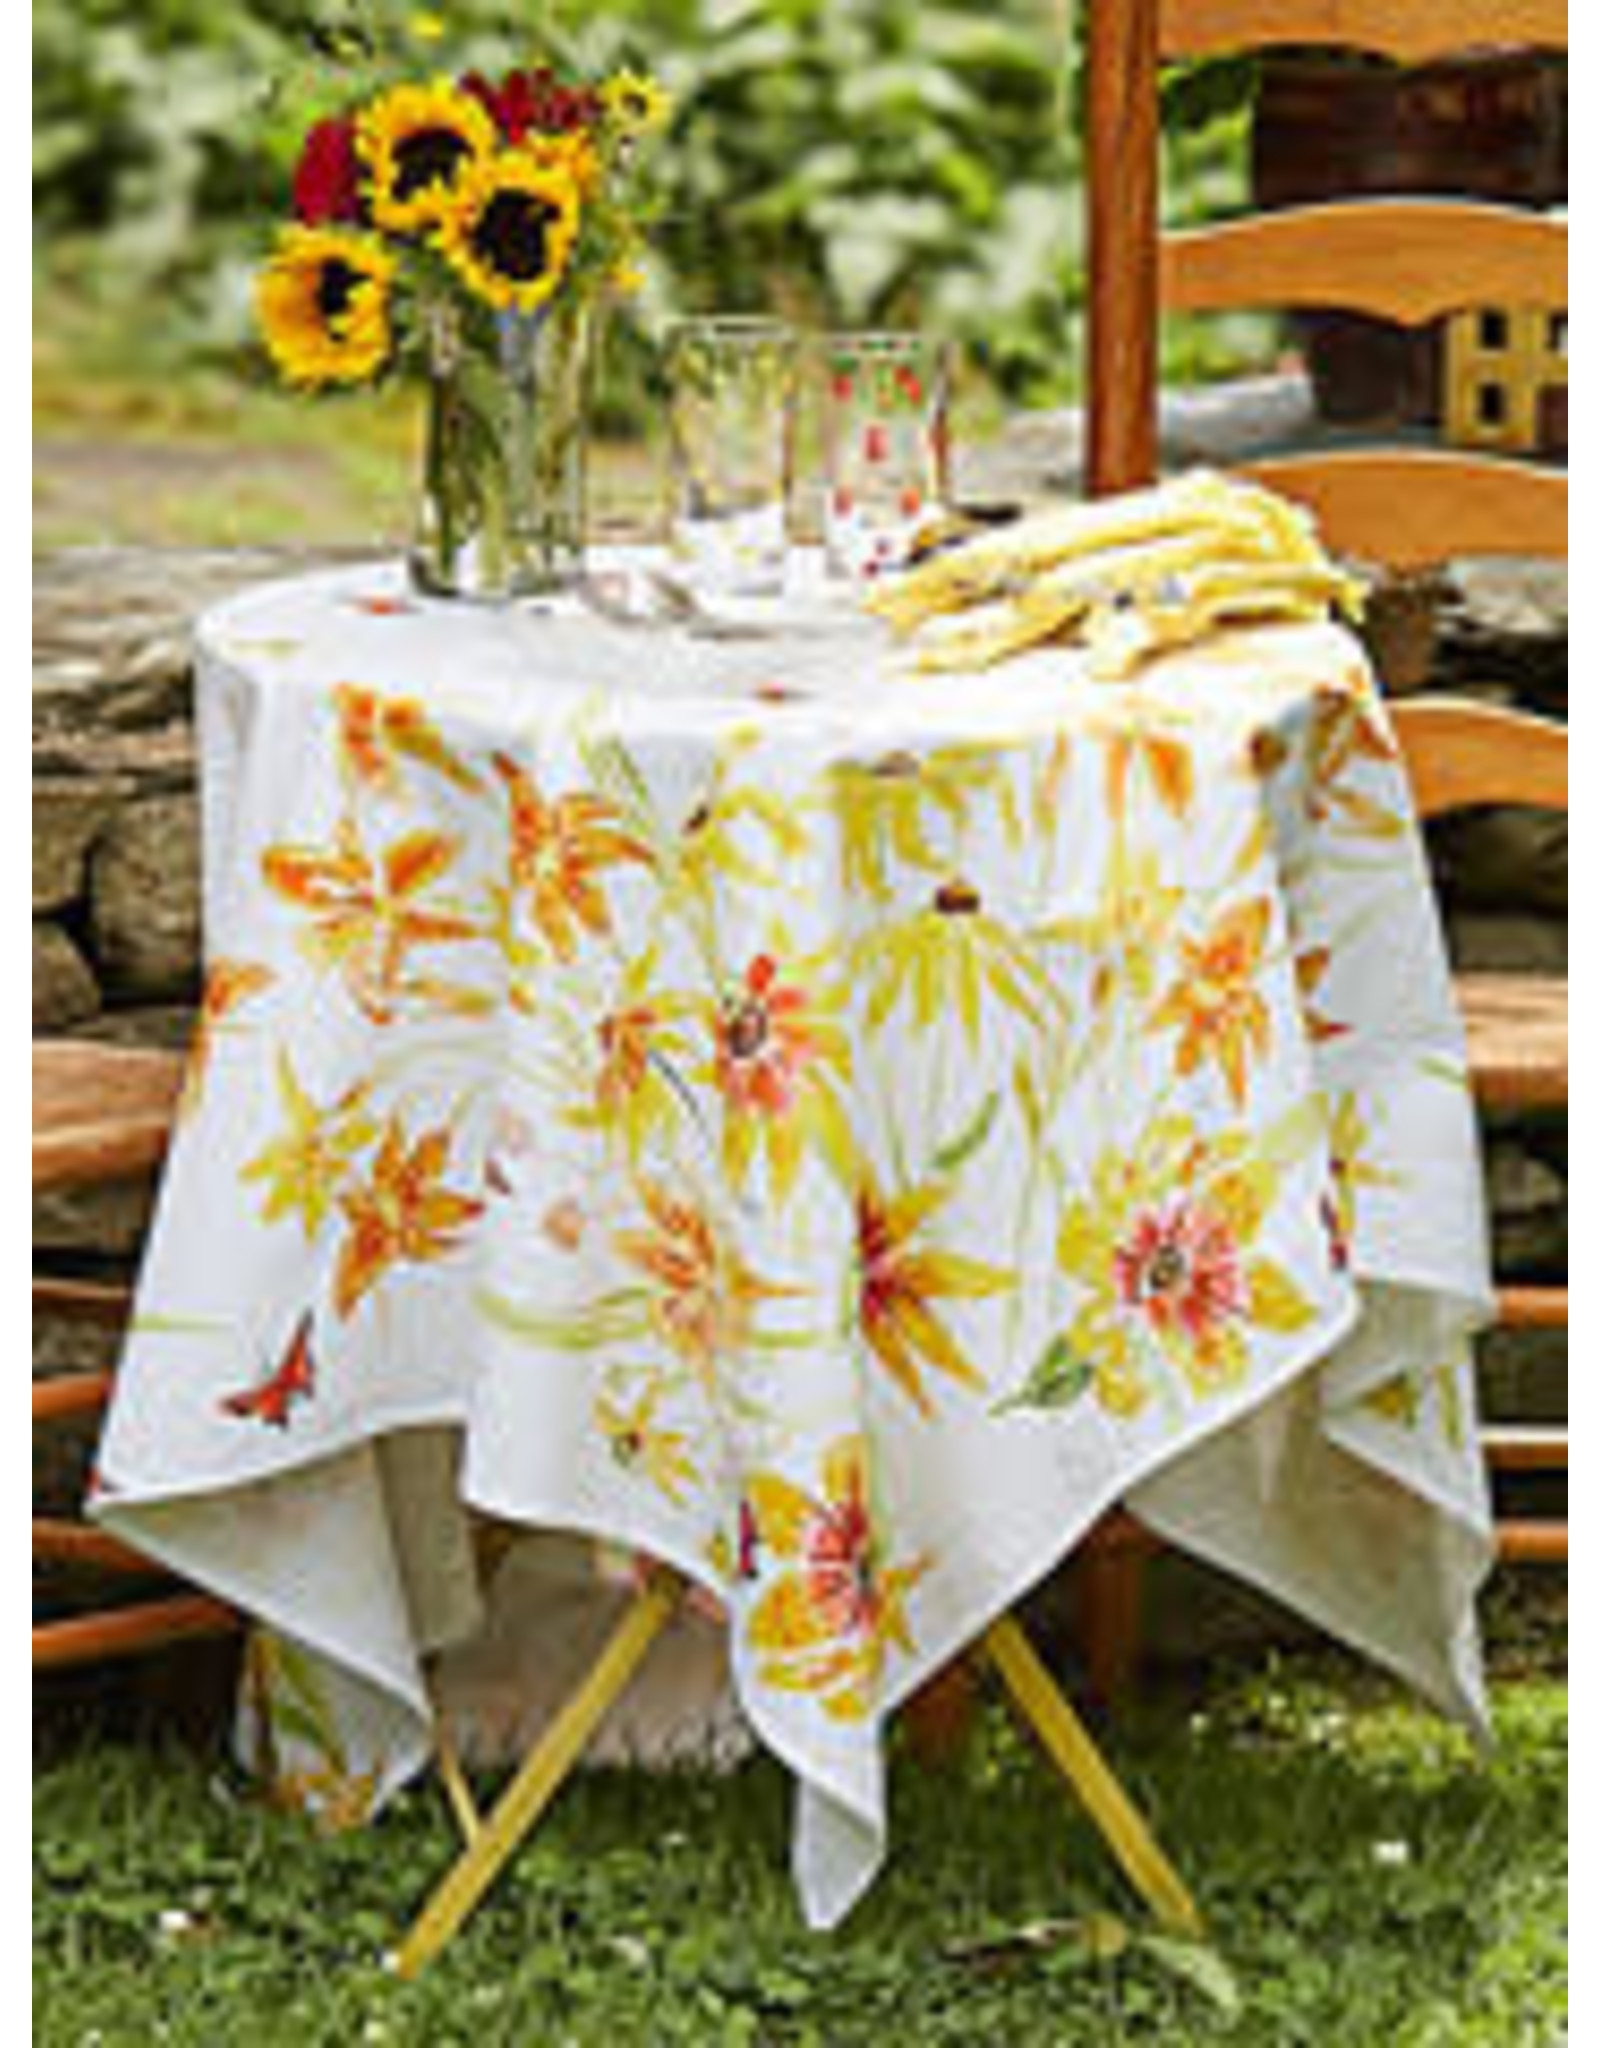 April Cornell April Cornell Black Eyed Susan Tablecloth 60x90